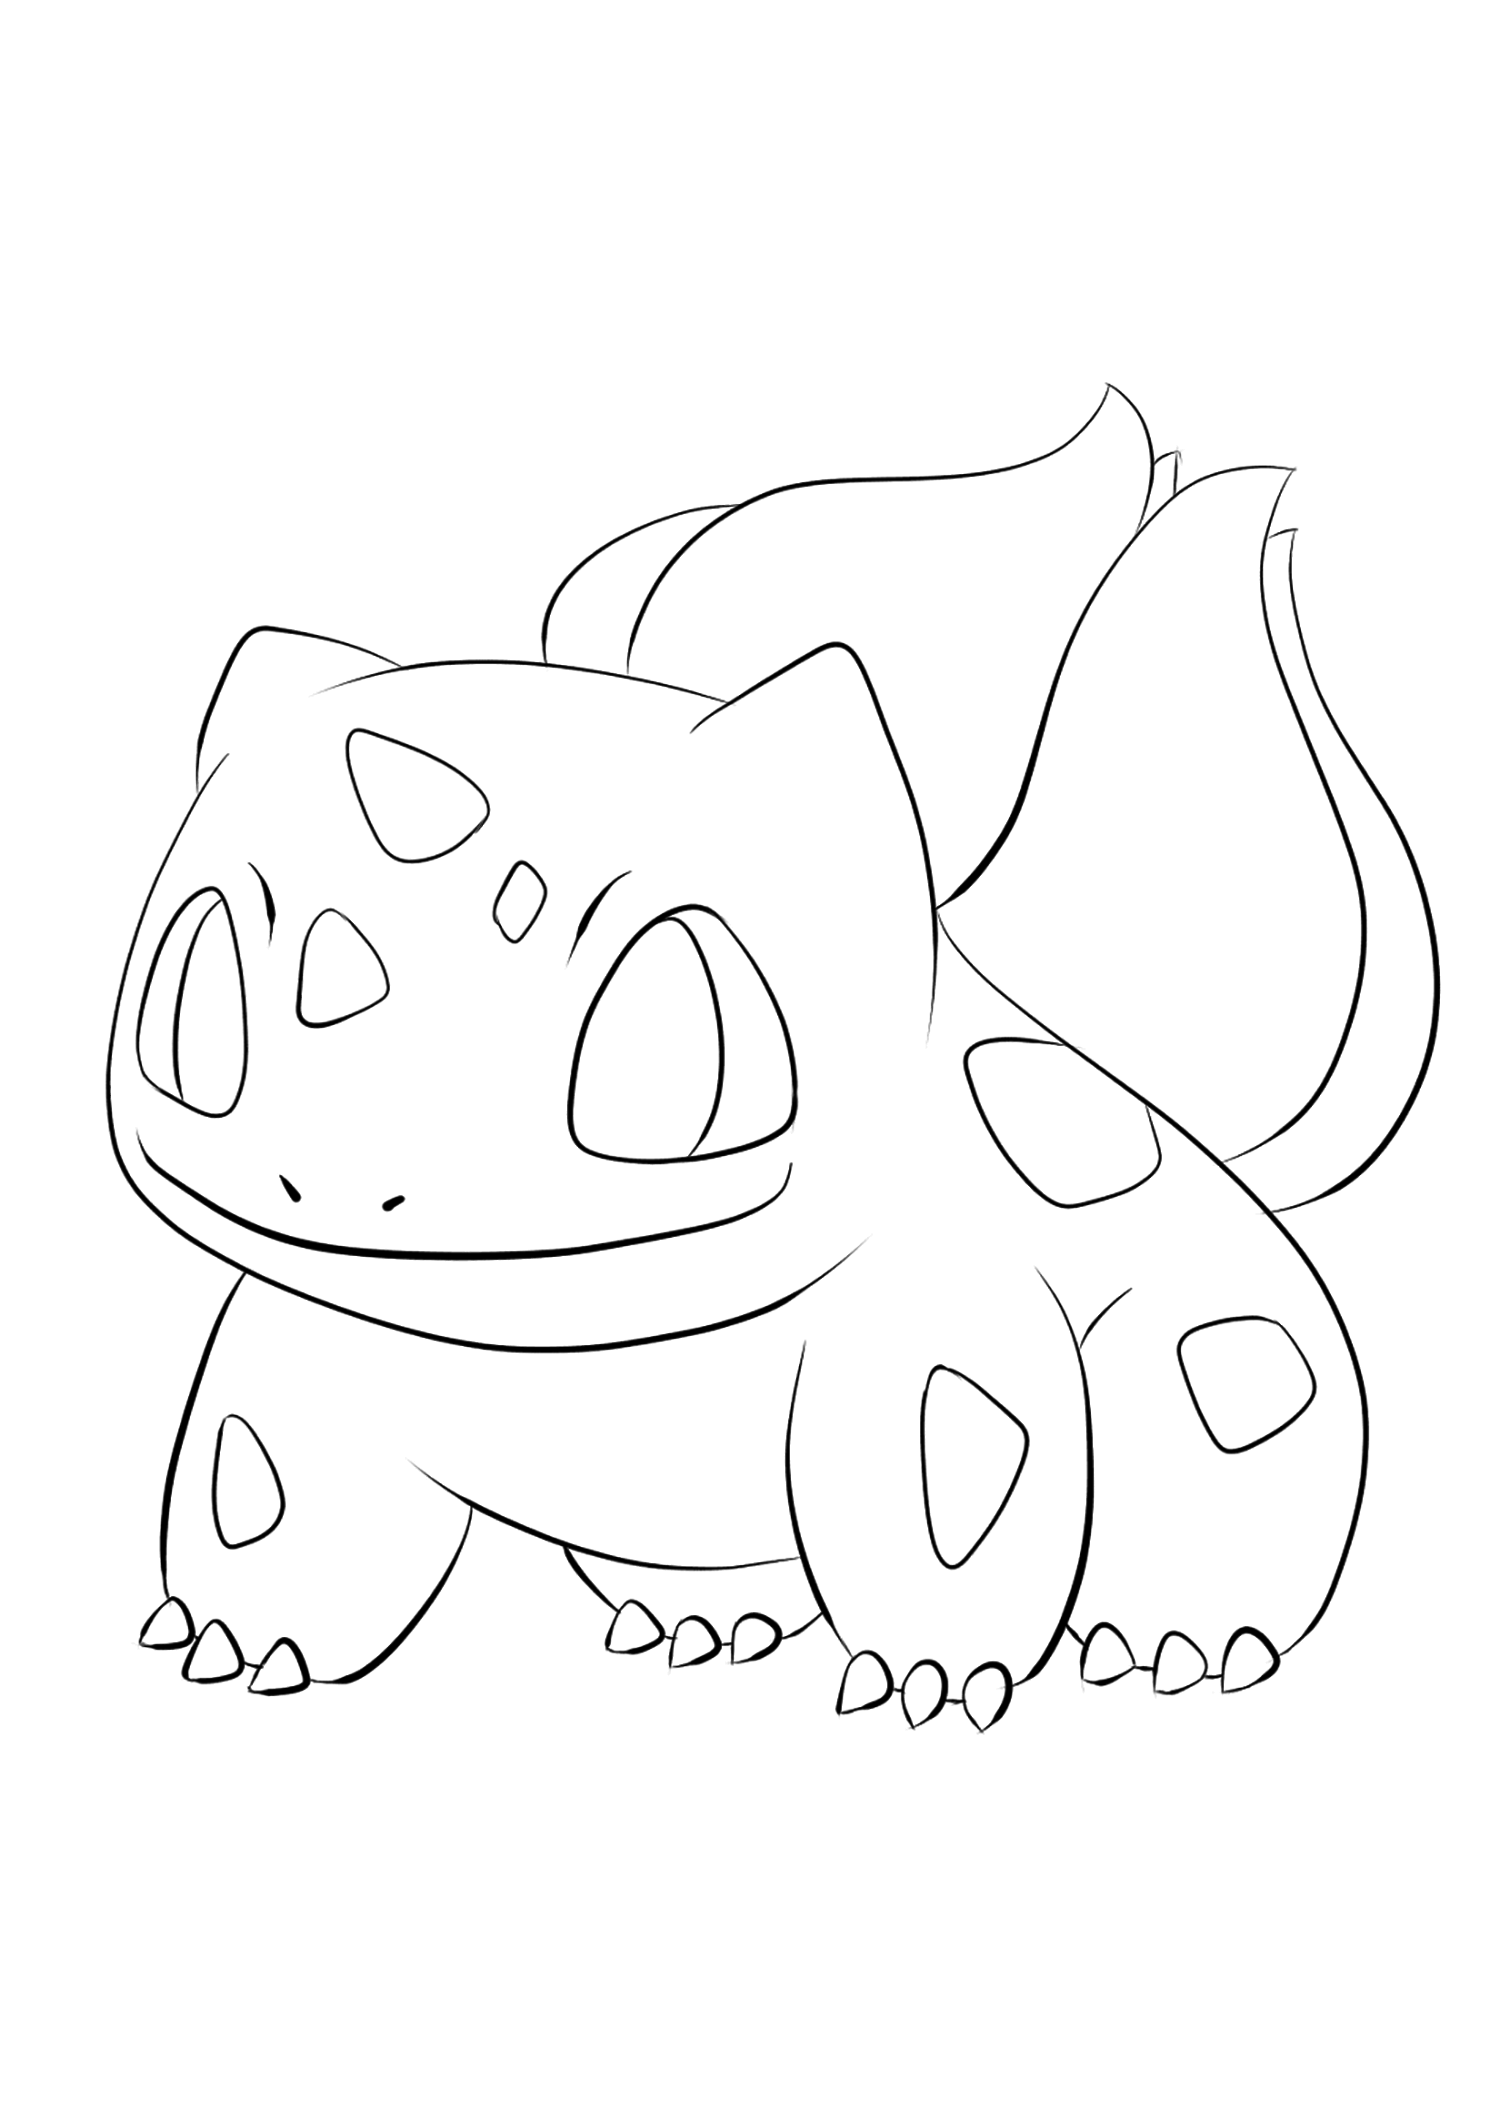 Bulbasaur No 01 Pokemon Generation I All Pokemon Coloring Pages Kids Coloring Pages